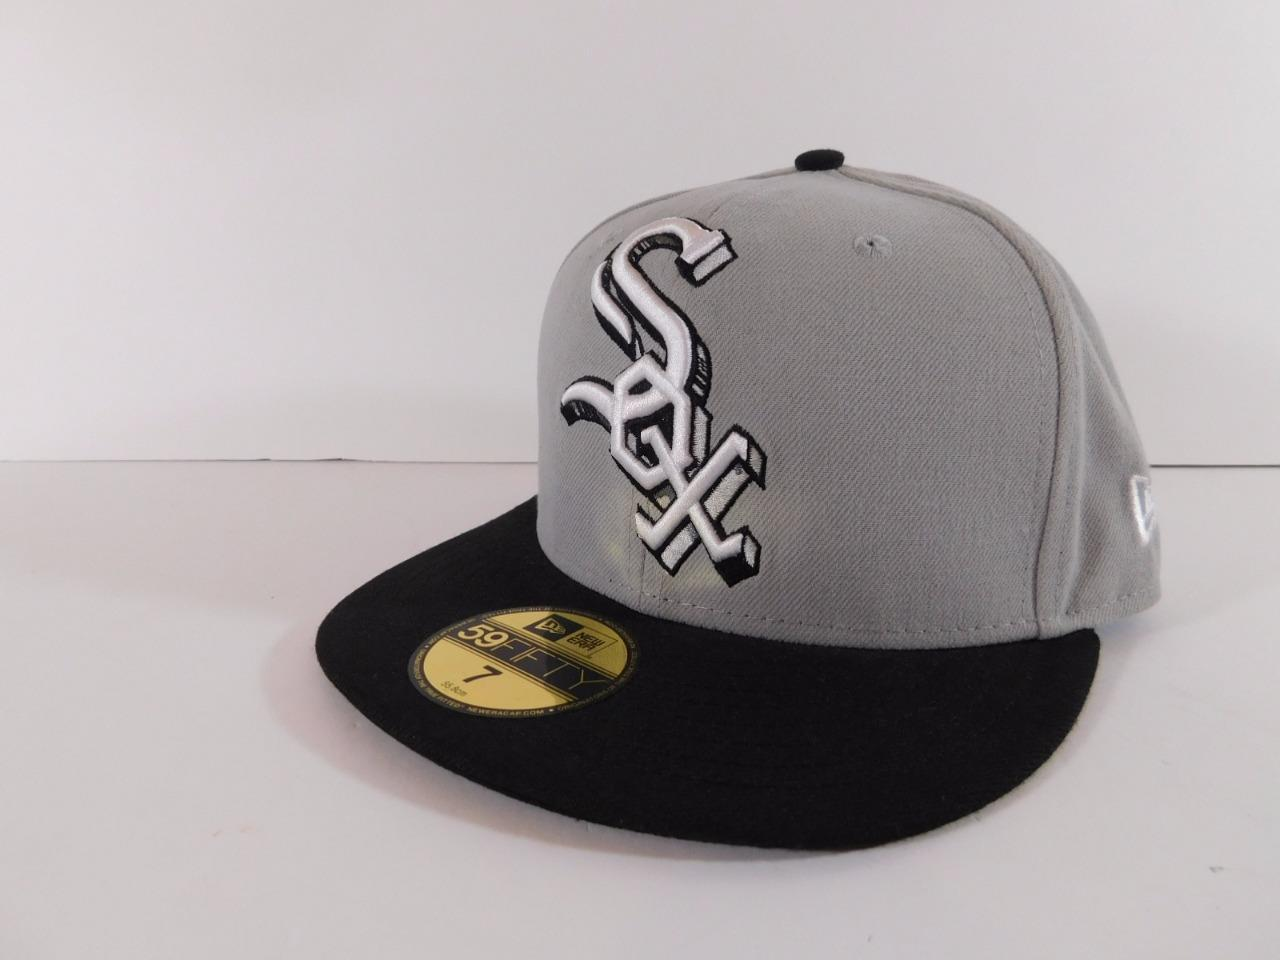 new era 59fifty 5950 chicago white sox mlb cooperstown. Black Bedroom Furniture Sets. Home Design Ideas